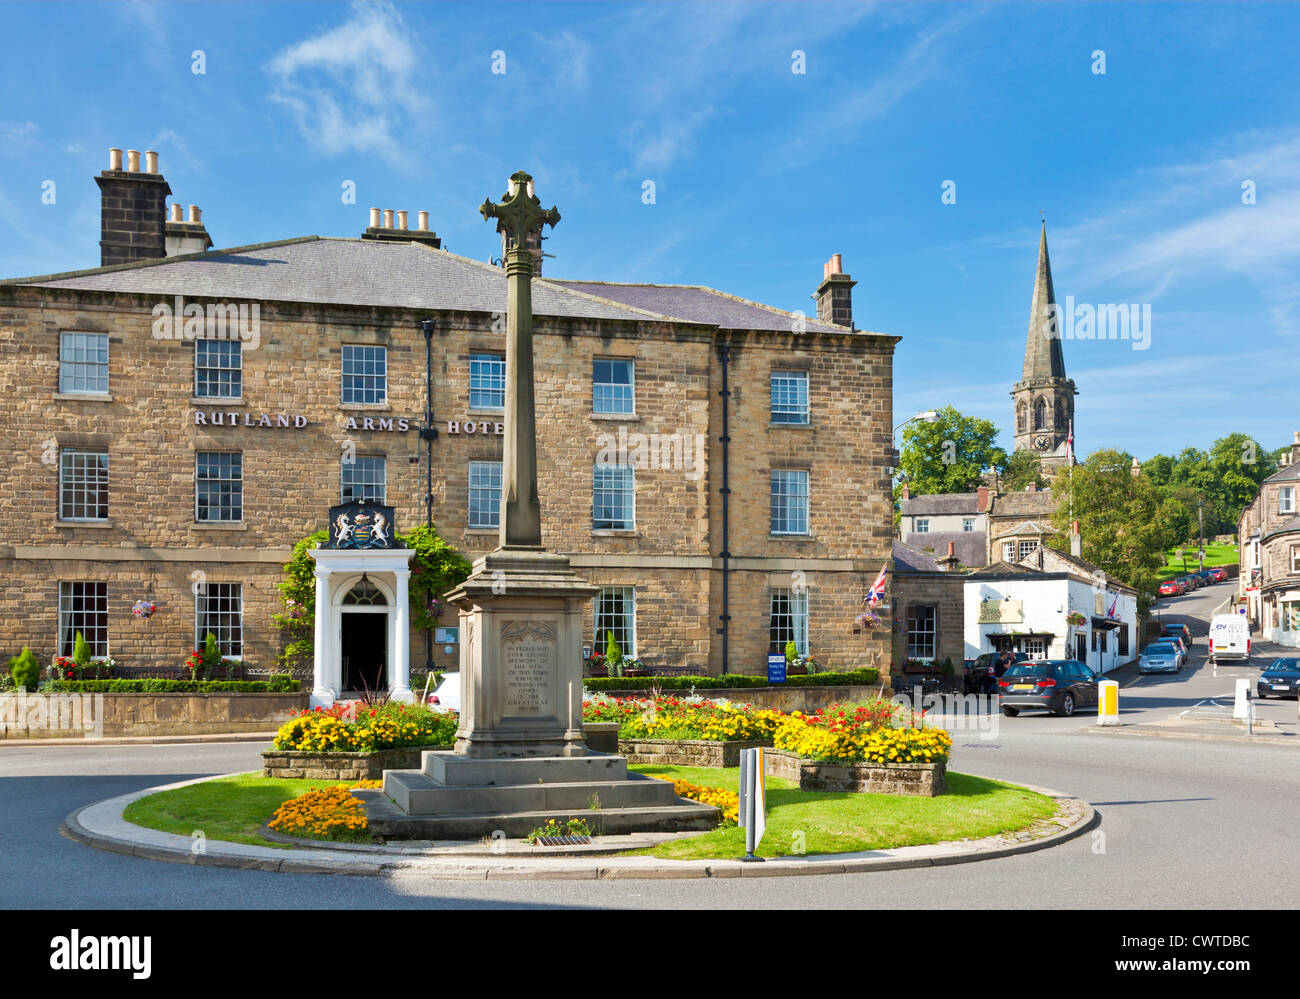 The Rutland Arms Hotel in Bakewell Town Centre Derbyshire Peak District national park England UK GB EU Europe - Stock Image